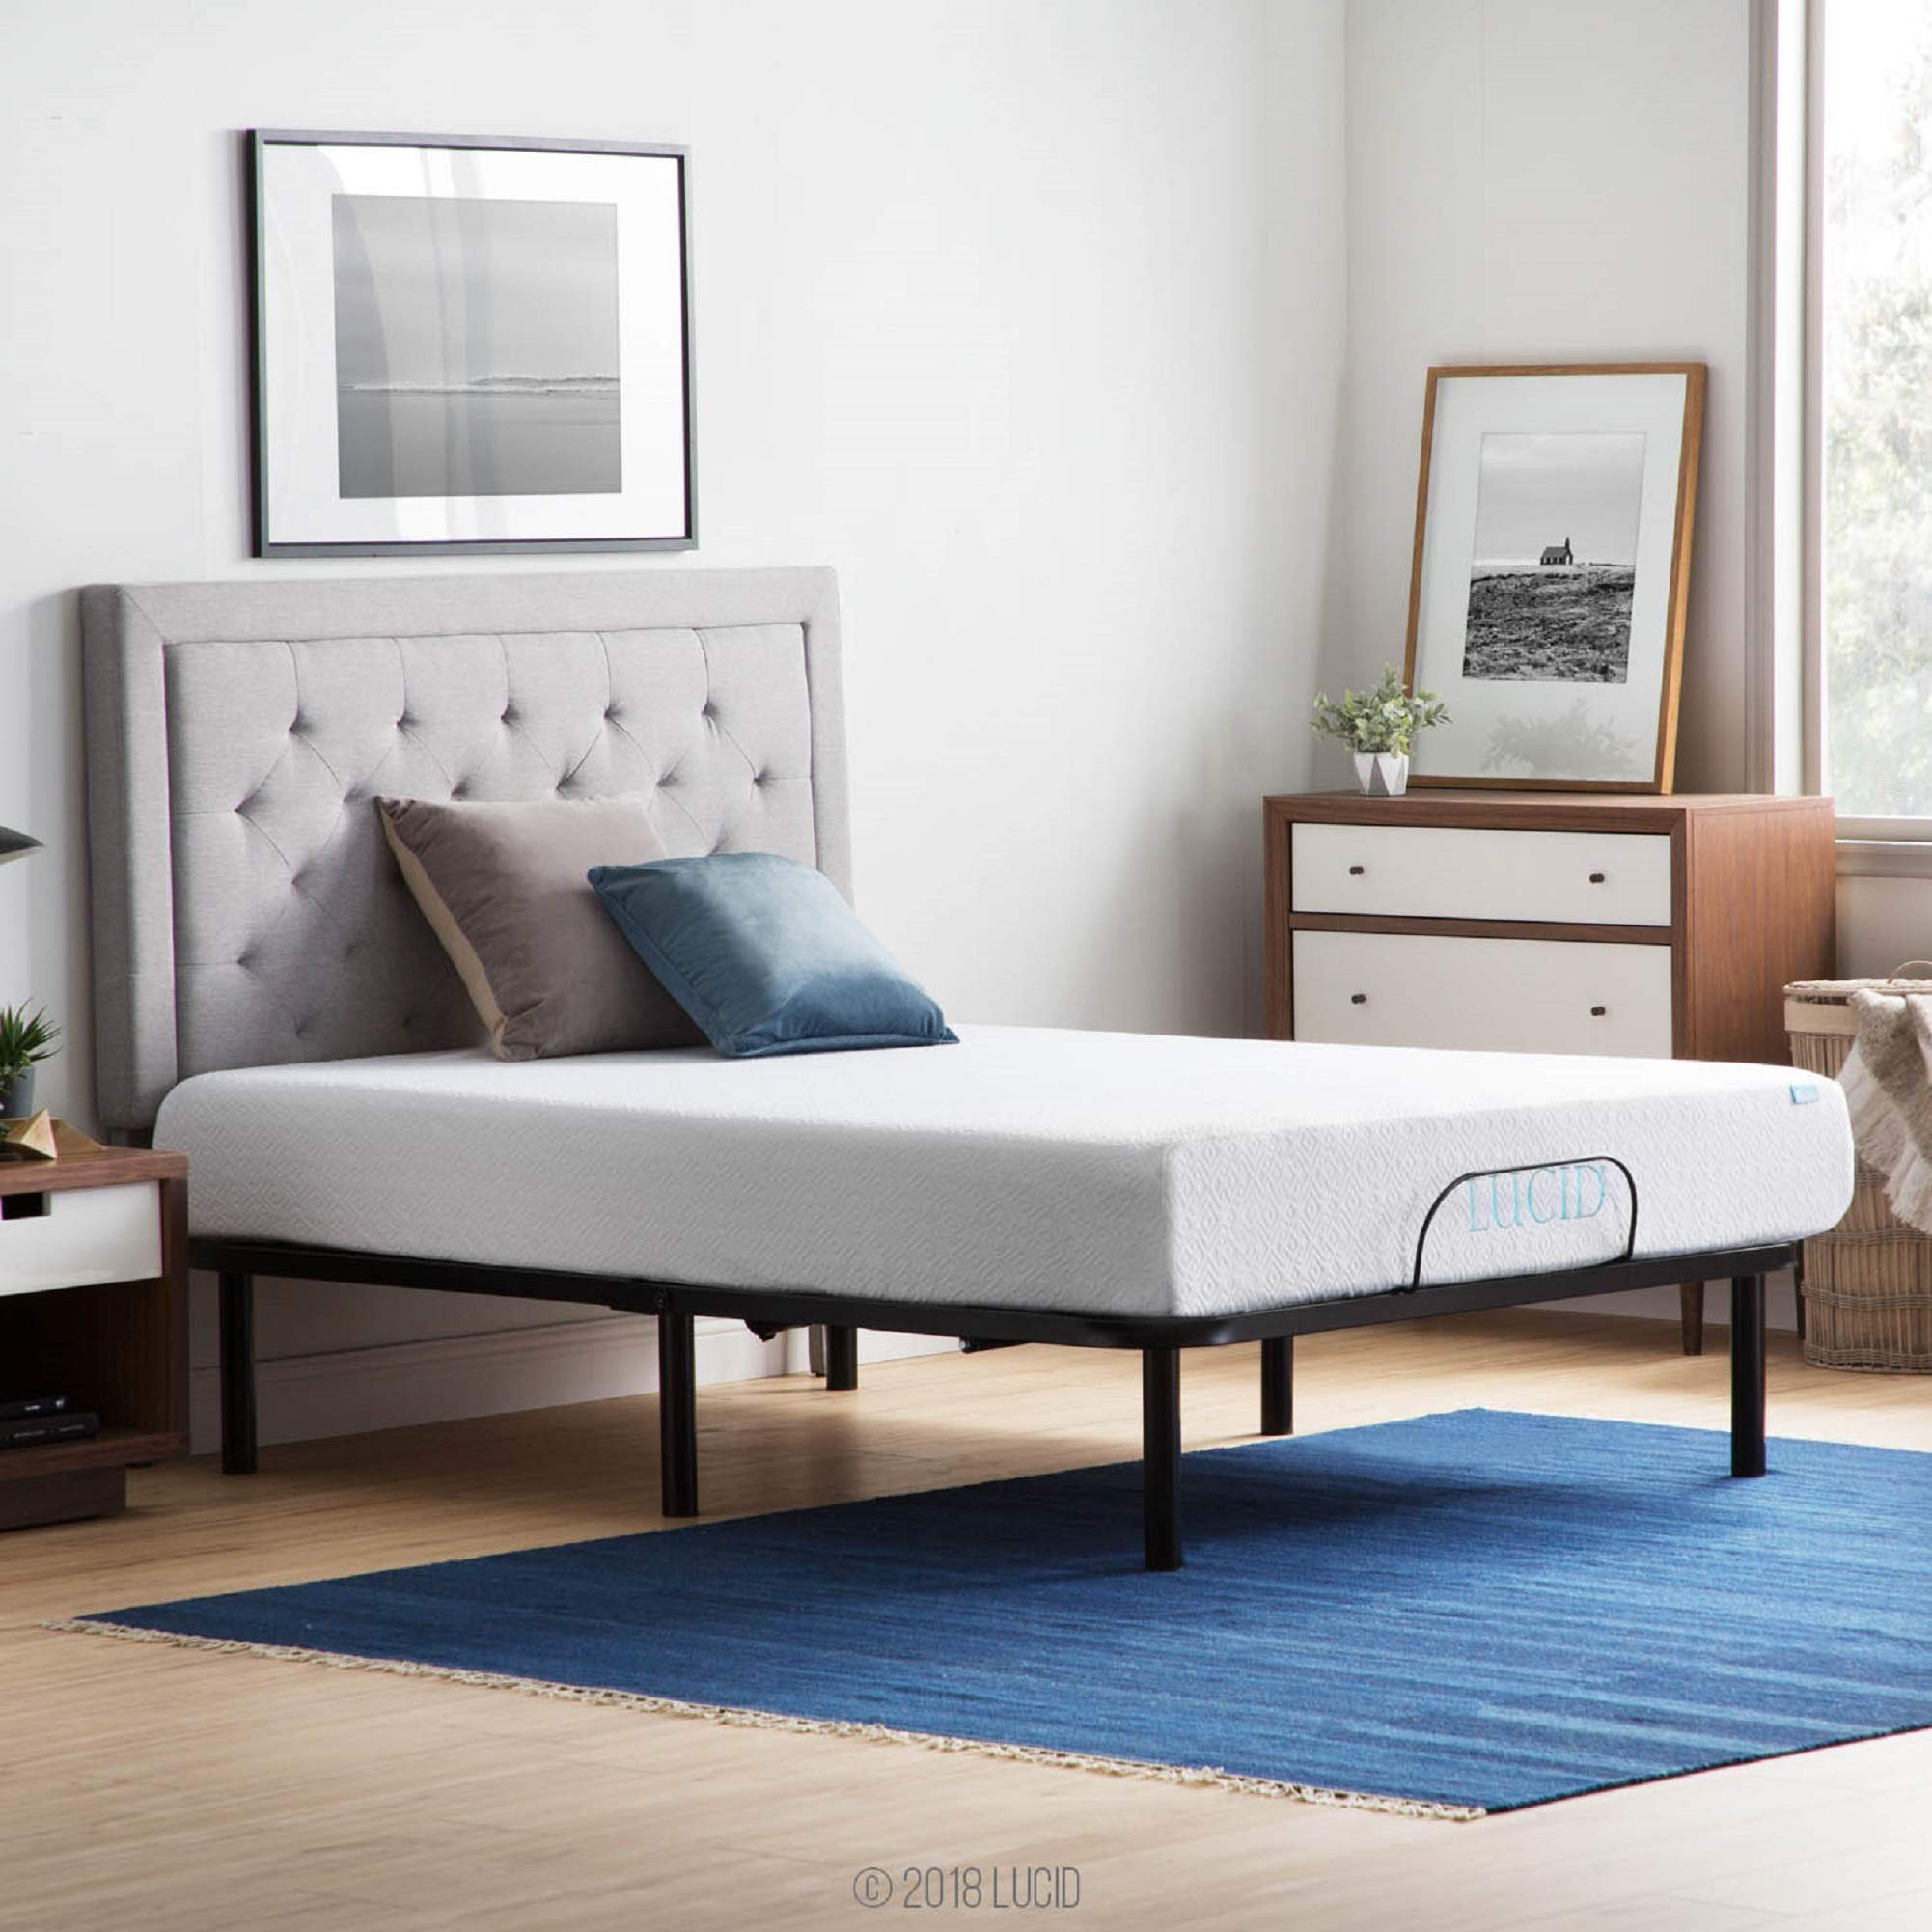 LUCID L100 Adjustable Bed Base with Lucid 10 Inch Gel Memory Foam Mattress - Queen by LUCID